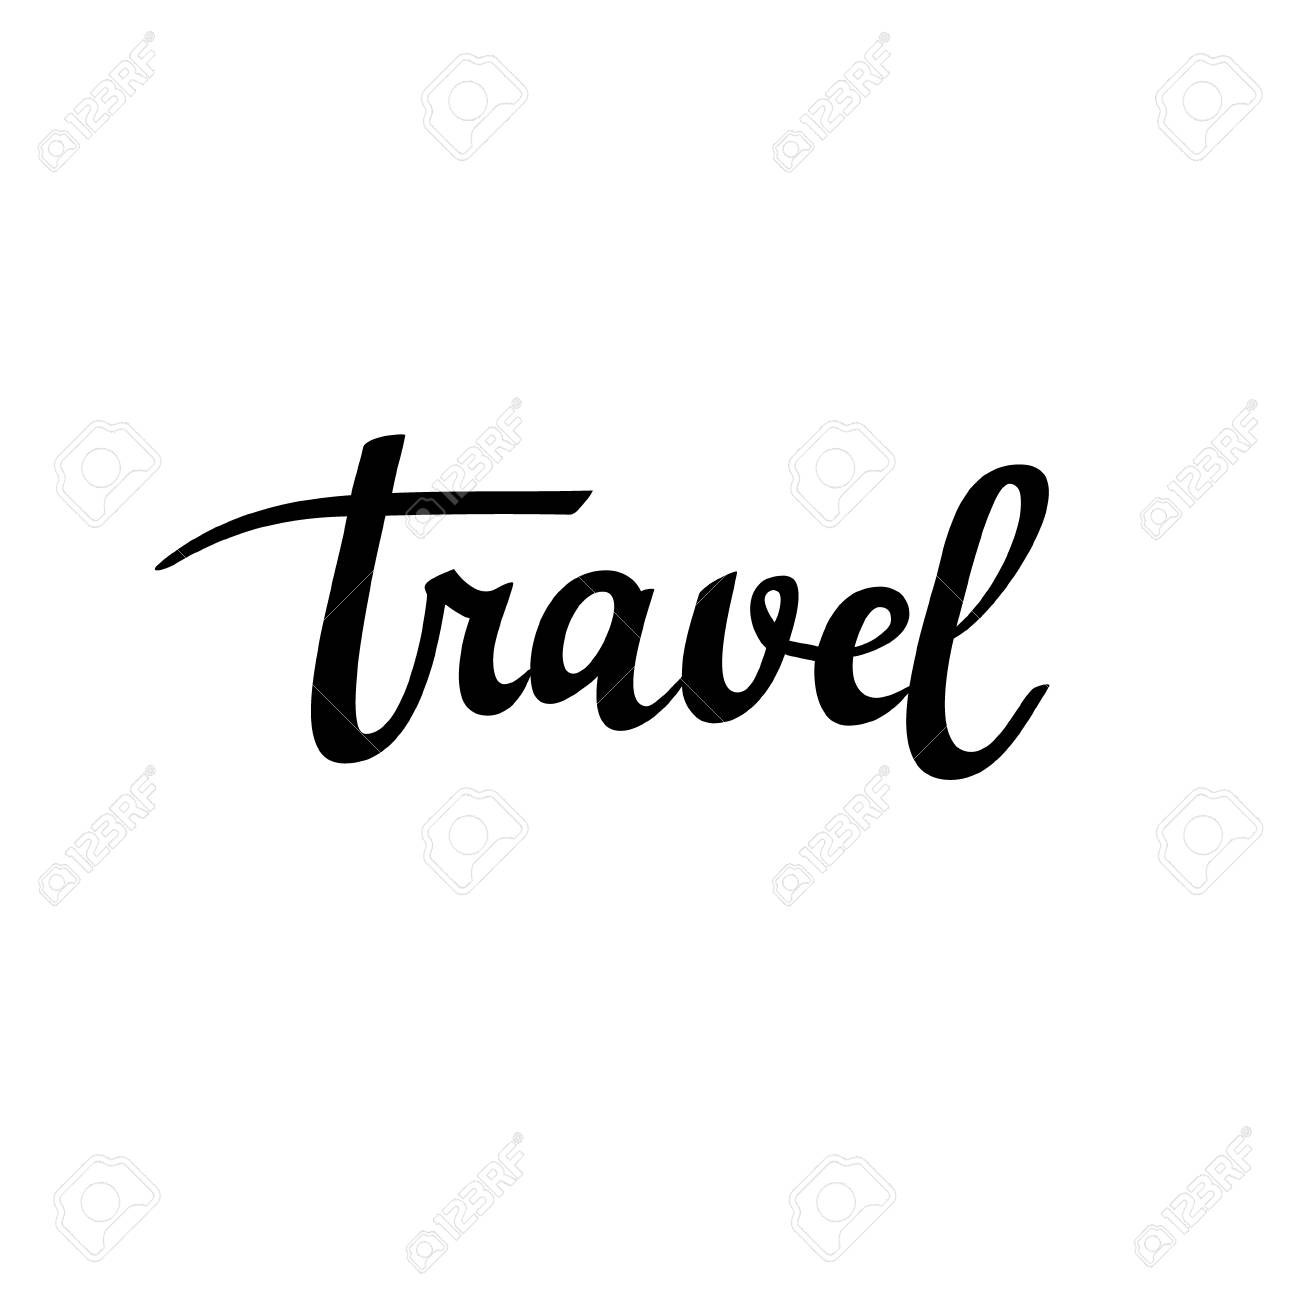 Travel Vector Calligraphy Inspiration Lettering Word Design